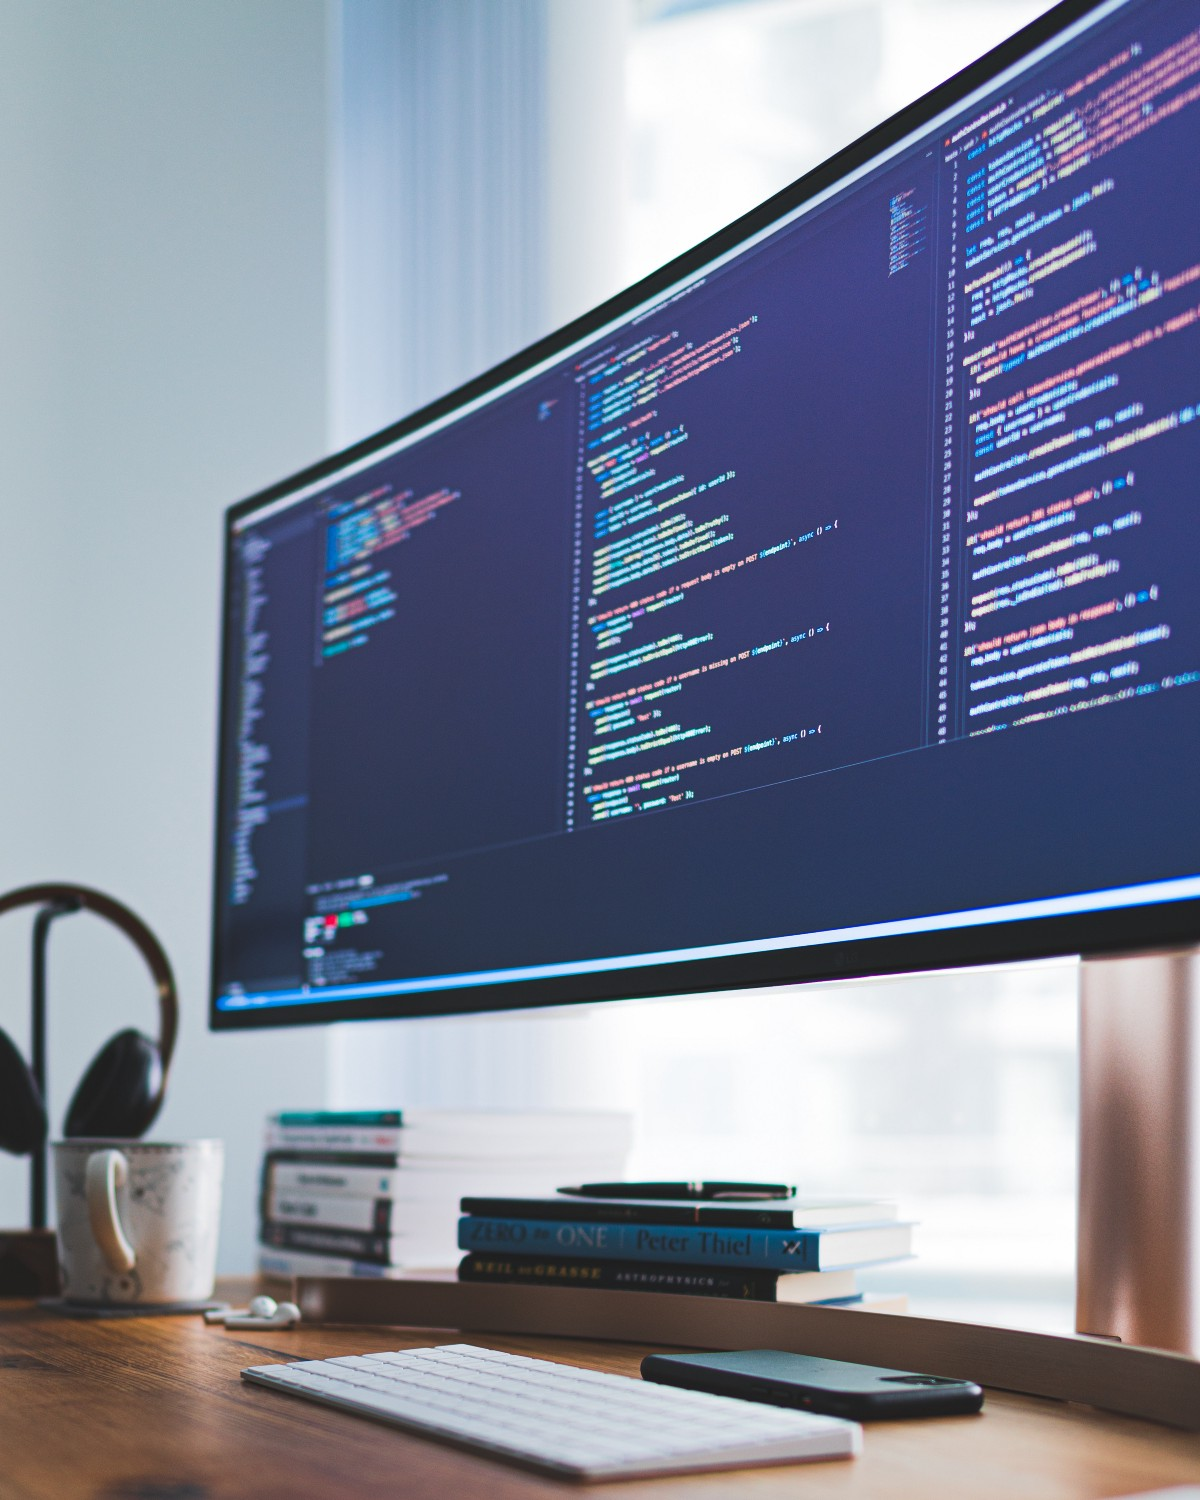 5 Development Rules to Improve Your Data Science Projects